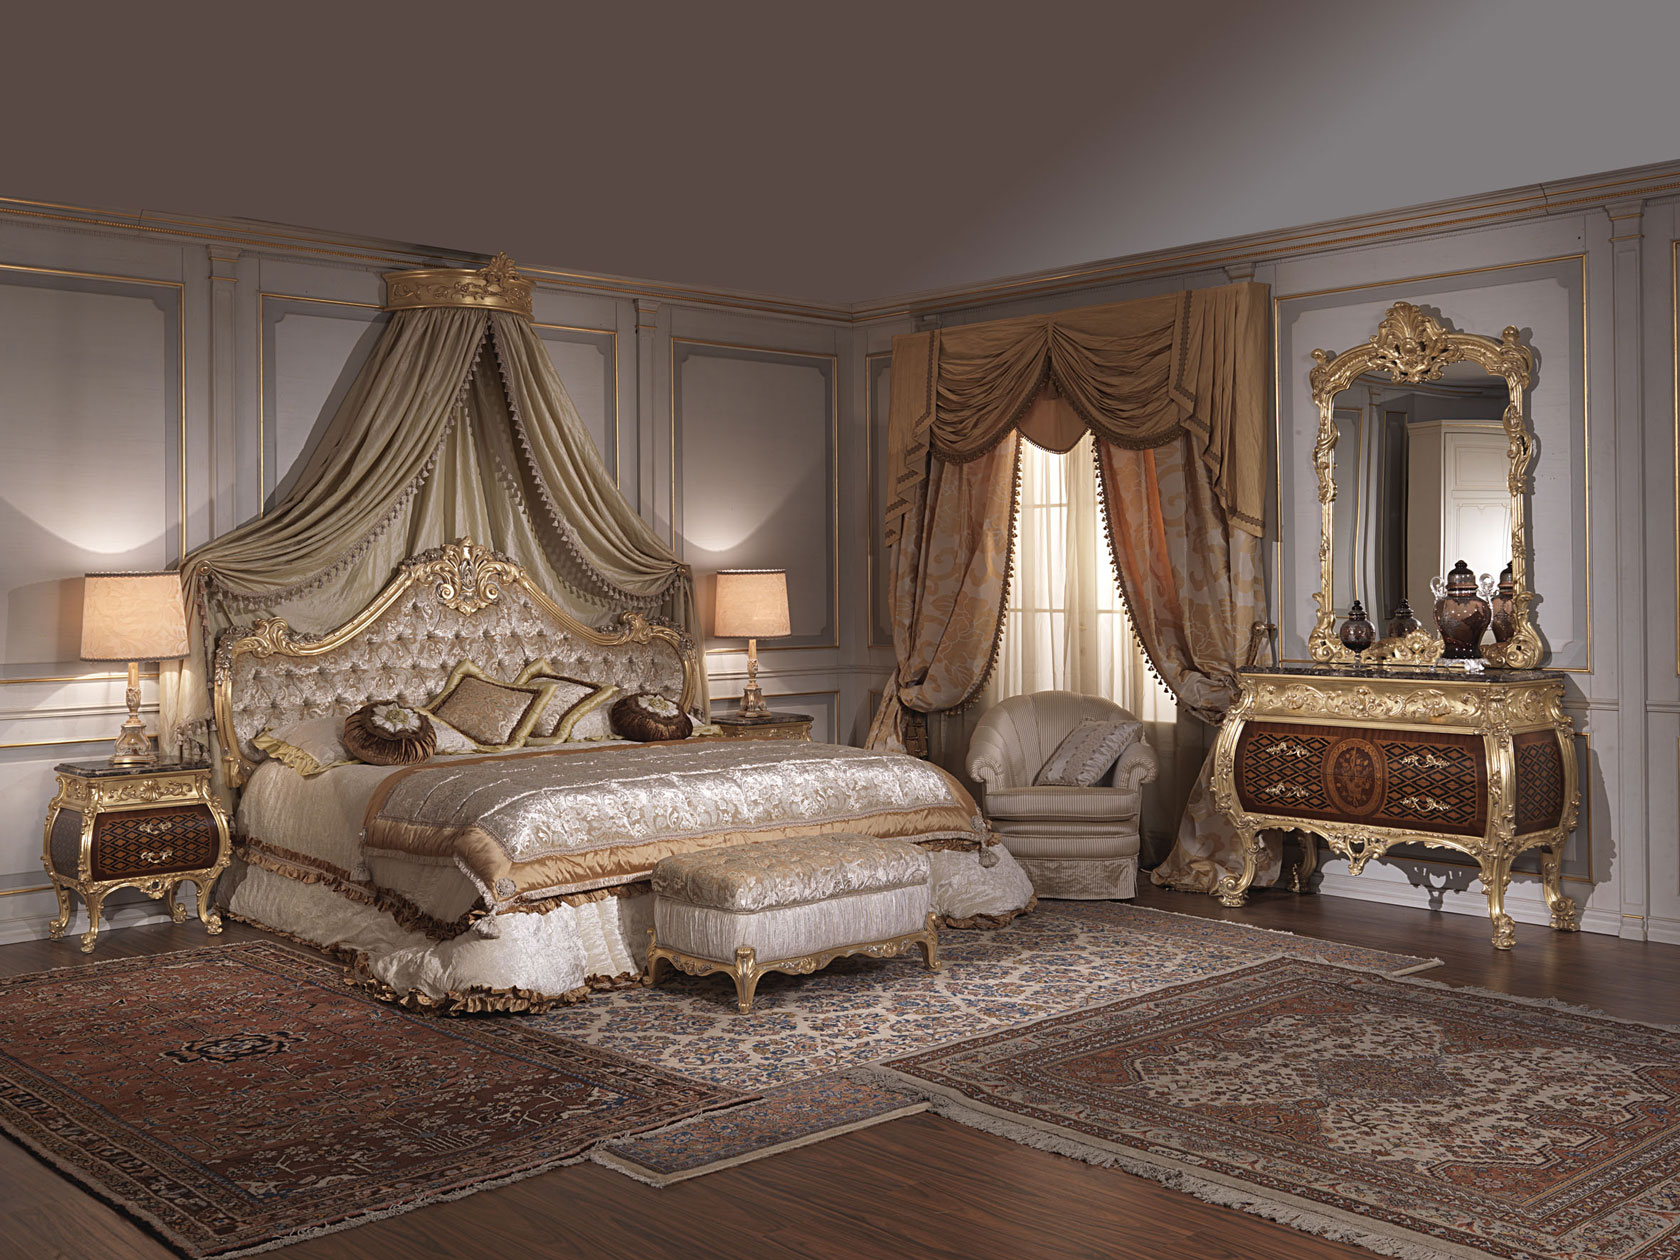 Classic Italian Bedroom 18th Century And Louis Xv